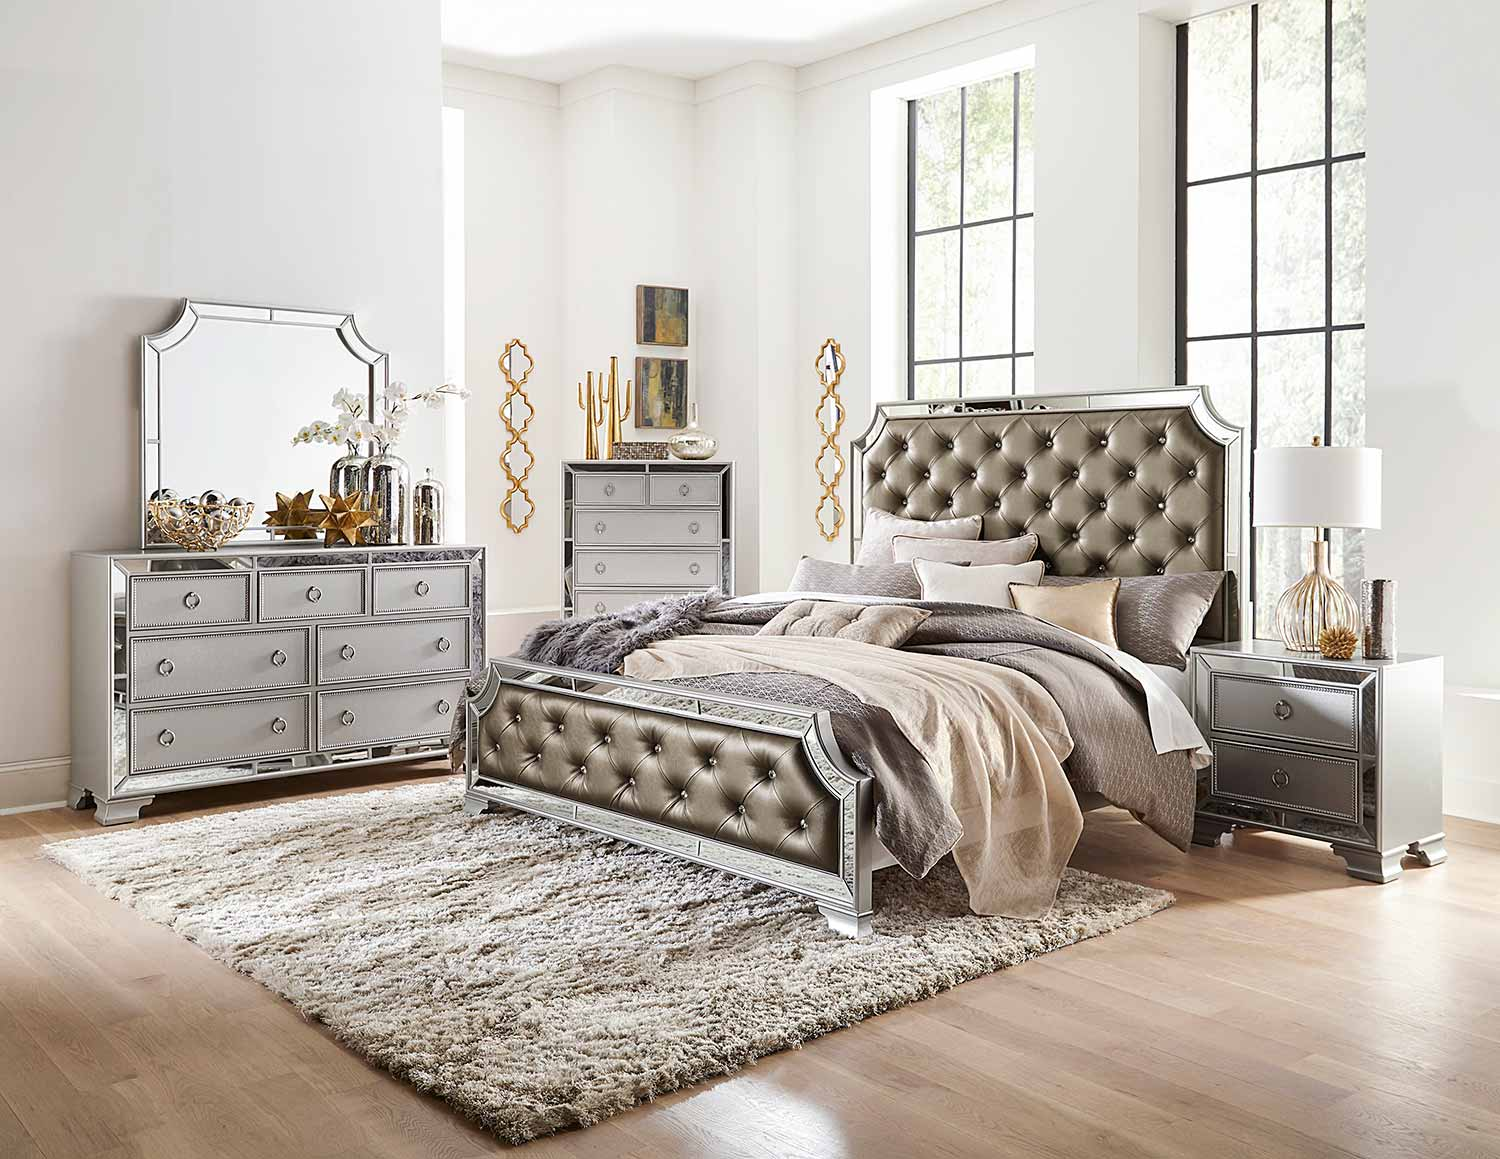 homelegance avondale bedroom set - silver 1646-bedroom set